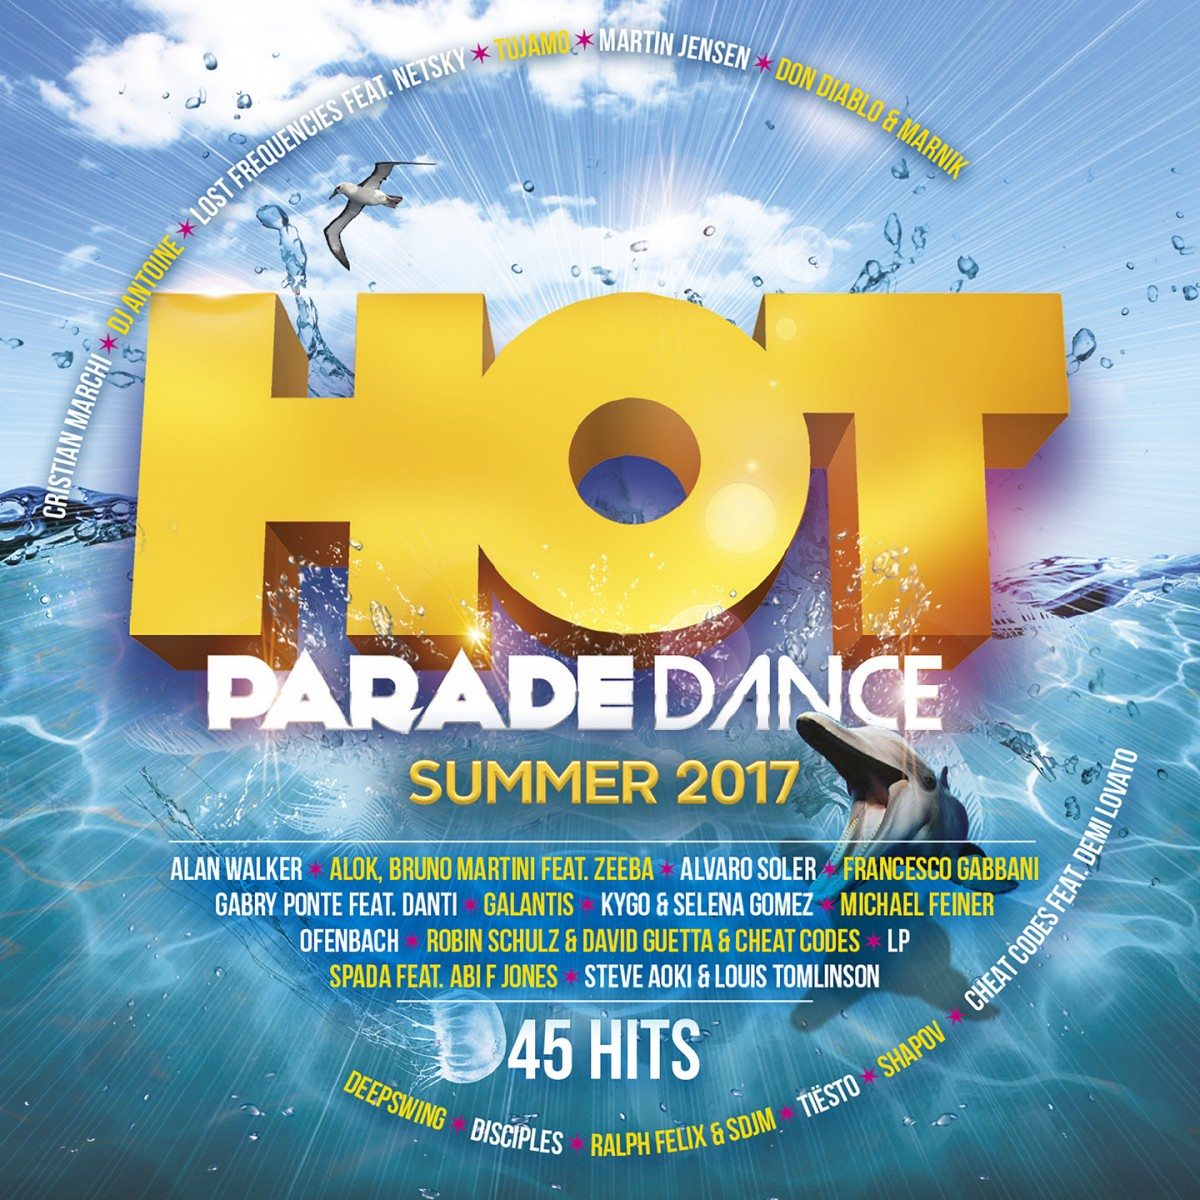 HOT PARADE DANCE SUMMER 2017